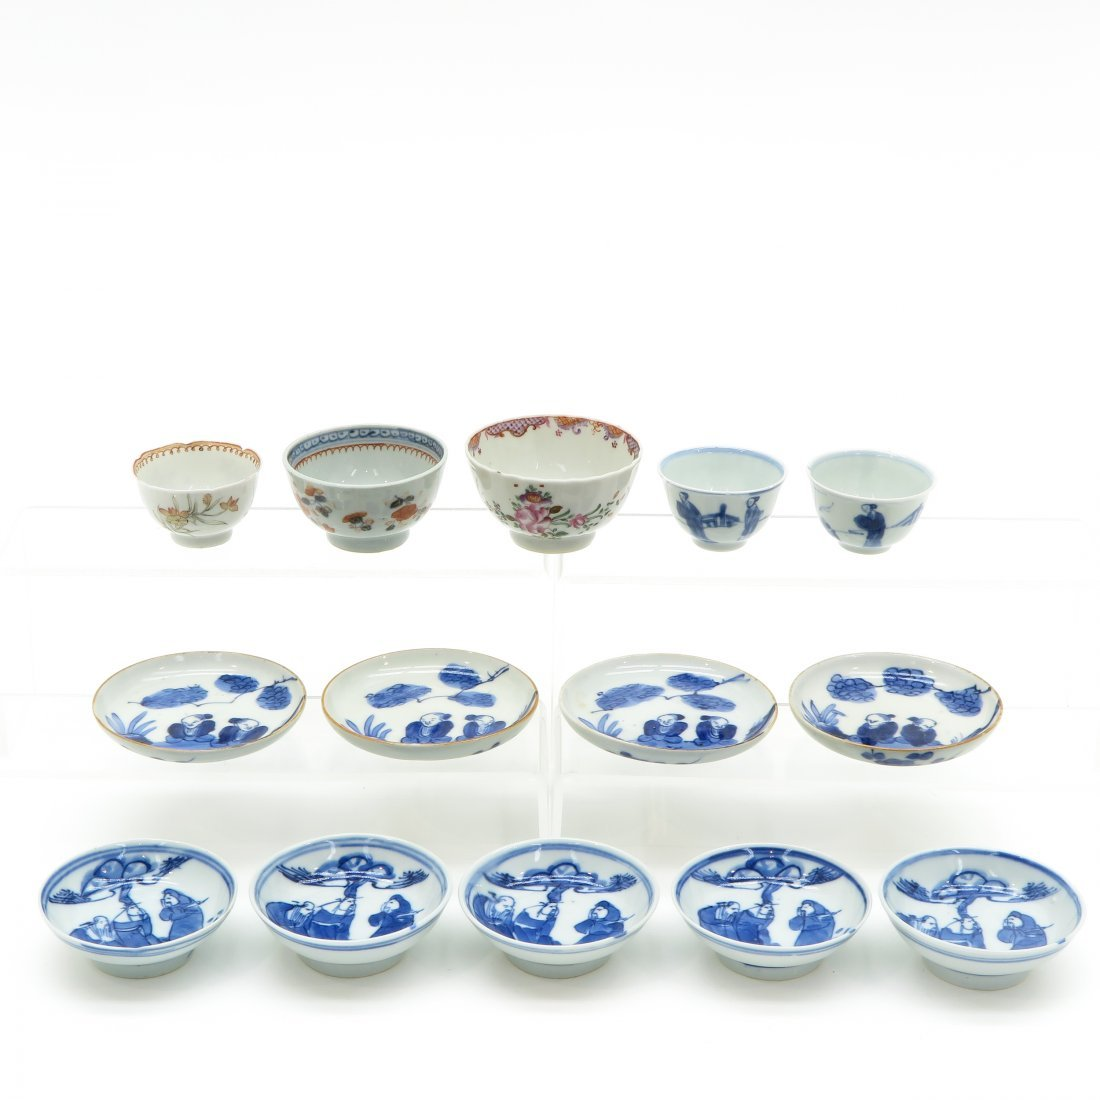 Diverse Lot of China Porcelain Cups and Saucers